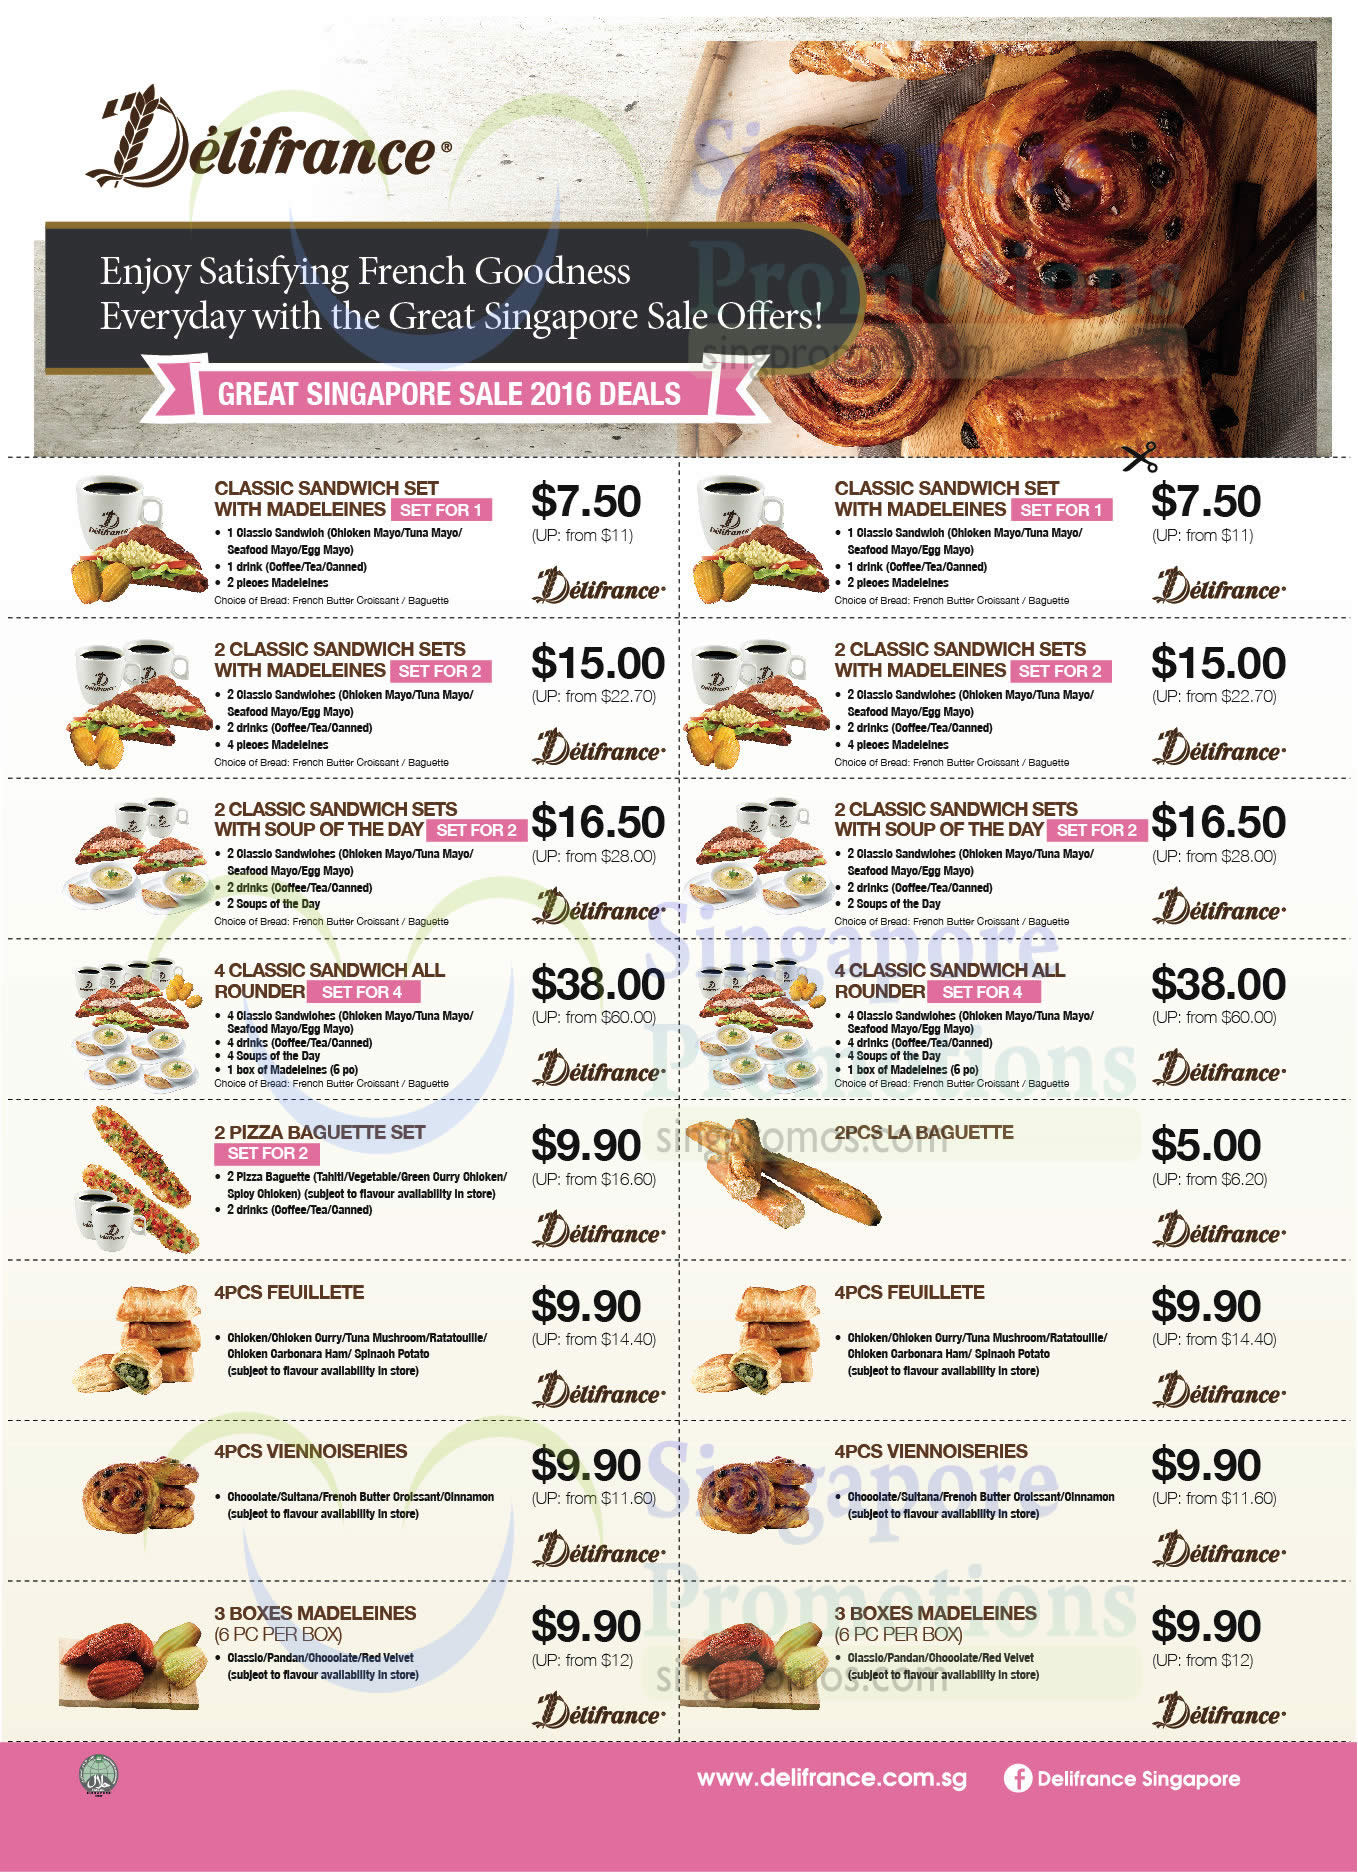 Delifrance Coupons Front (May 2016)